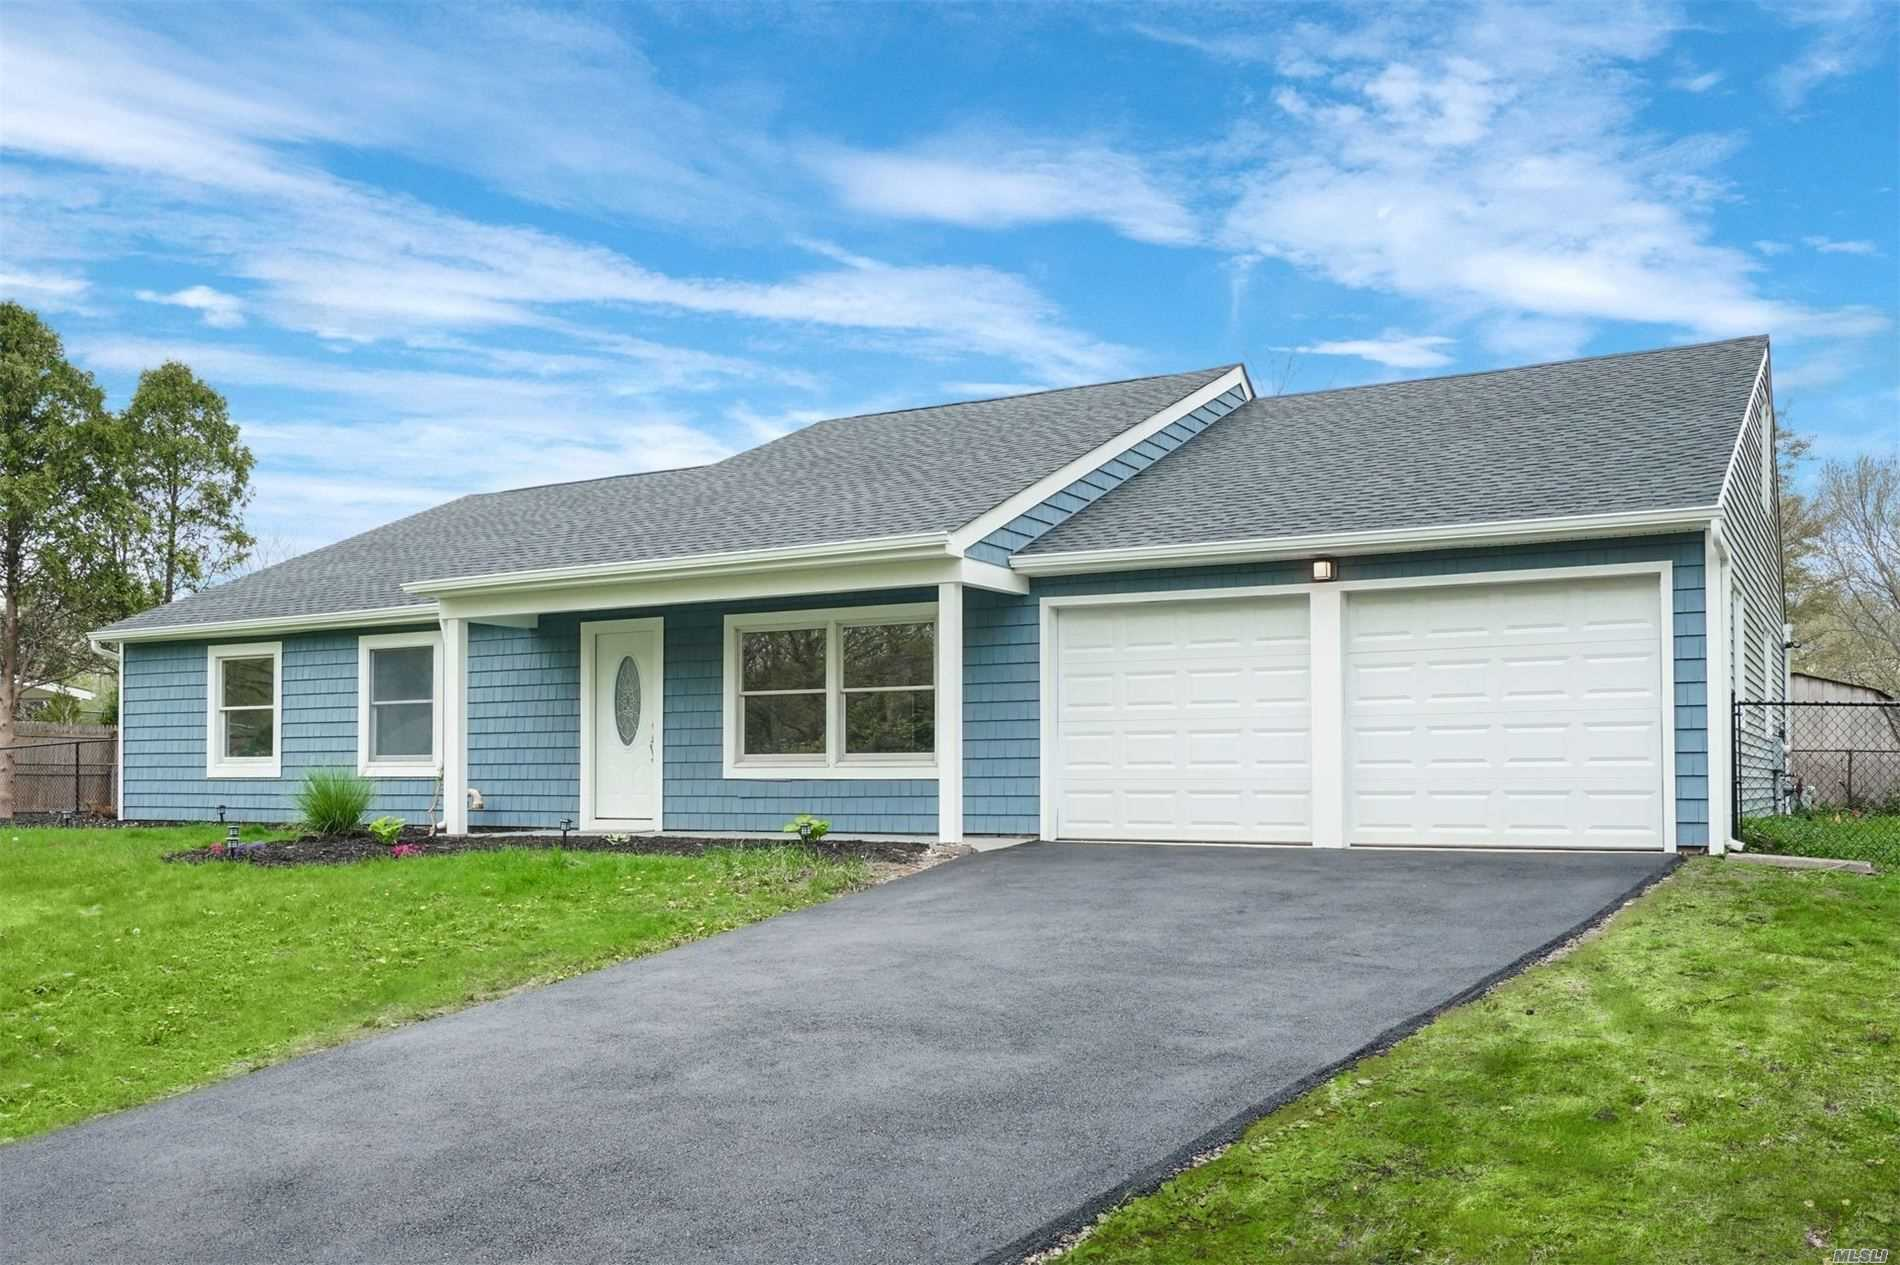 Completely Renovated Top To Bottom. New Roof, Siding, Fencing, Driveway, Garage doors, Brand new Interior With Quality Finishes.